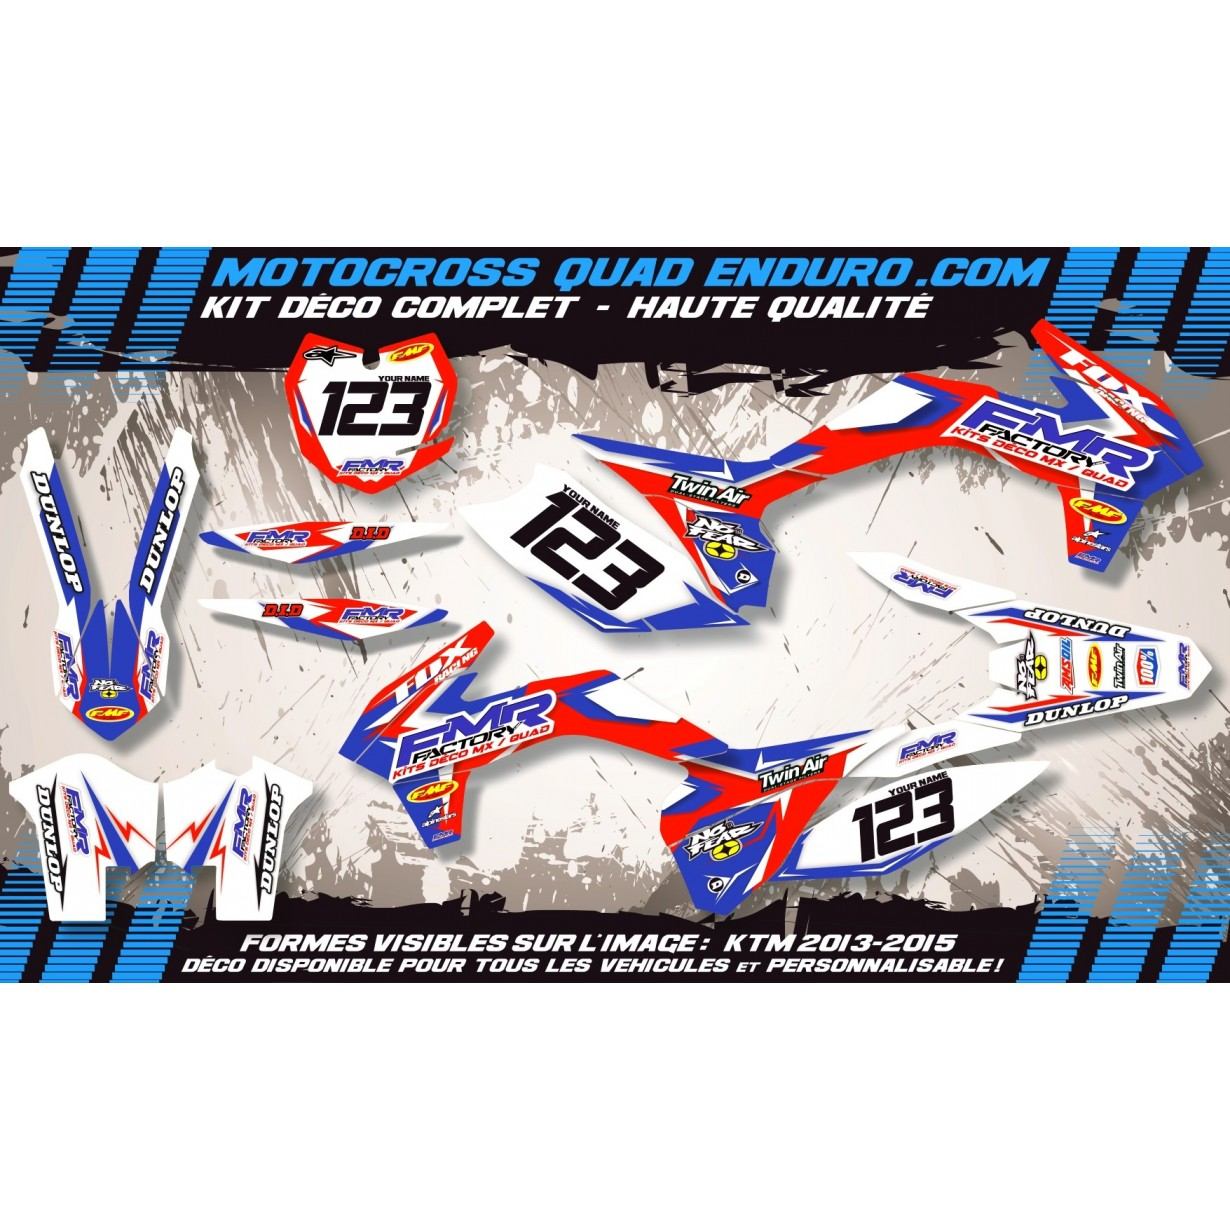 KIT DÉCO Perso TC 250 à 510 05-07 Fmr Factory MA13A